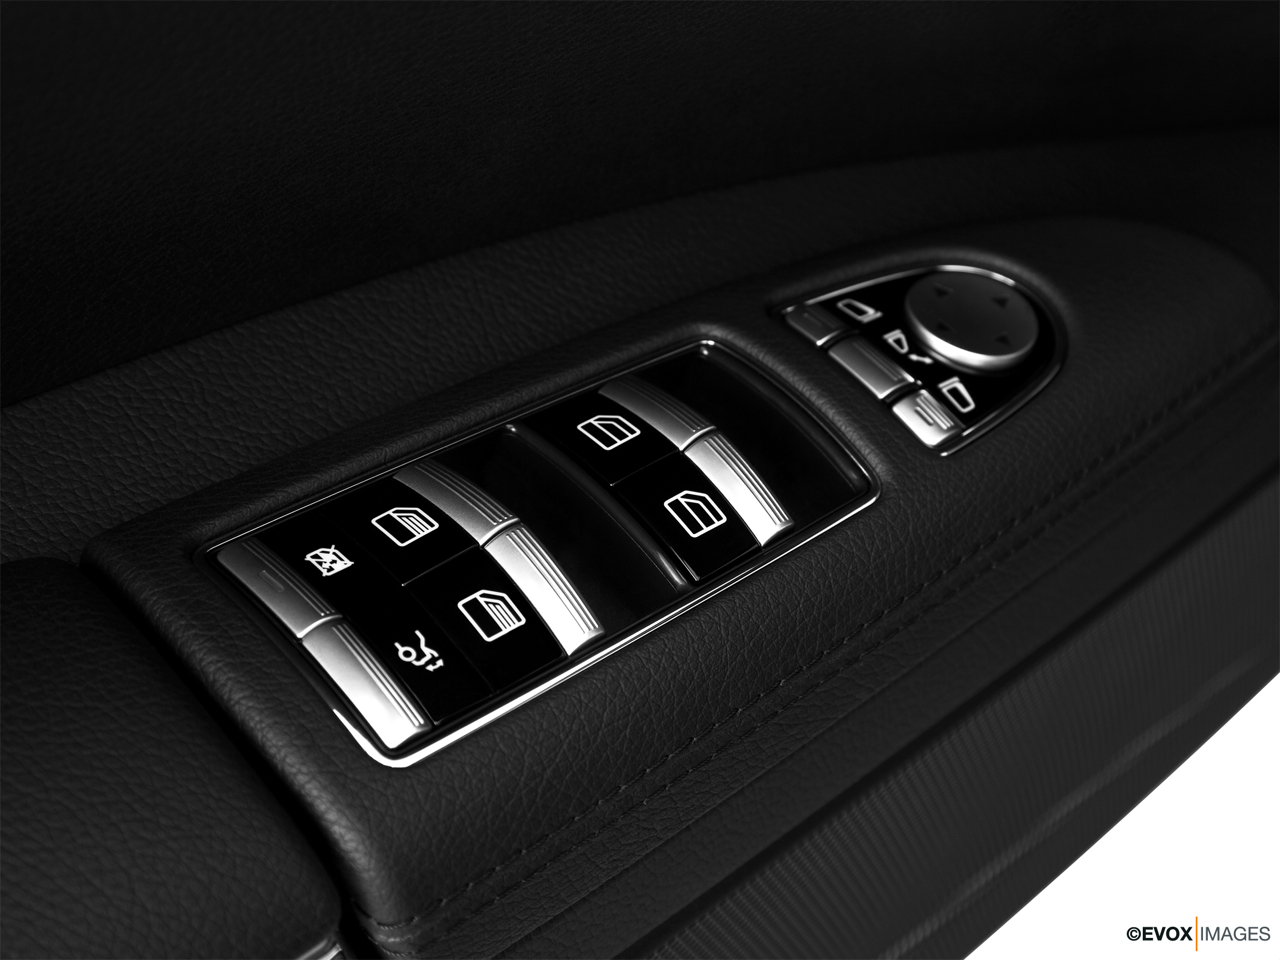 2010 Mercedes-Benz S-Class Hybrid S400 Driver's side inside window controls.